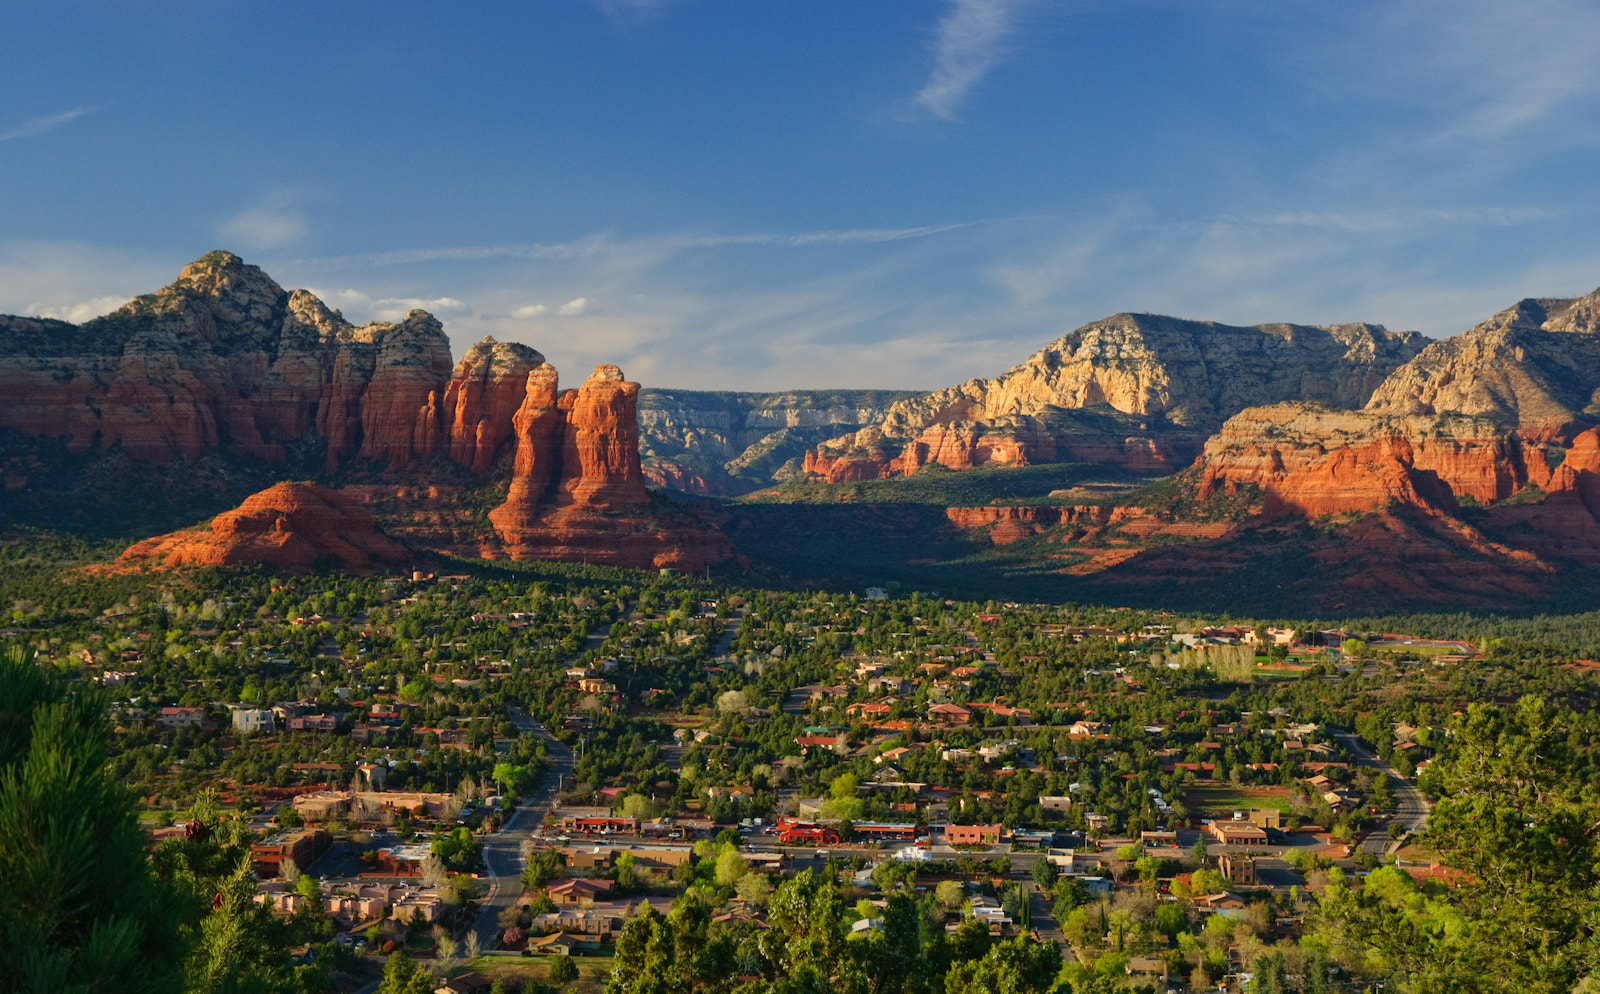 Photograph Sedona in Perfect Still Atmosphere by Doug Chesser on 500px